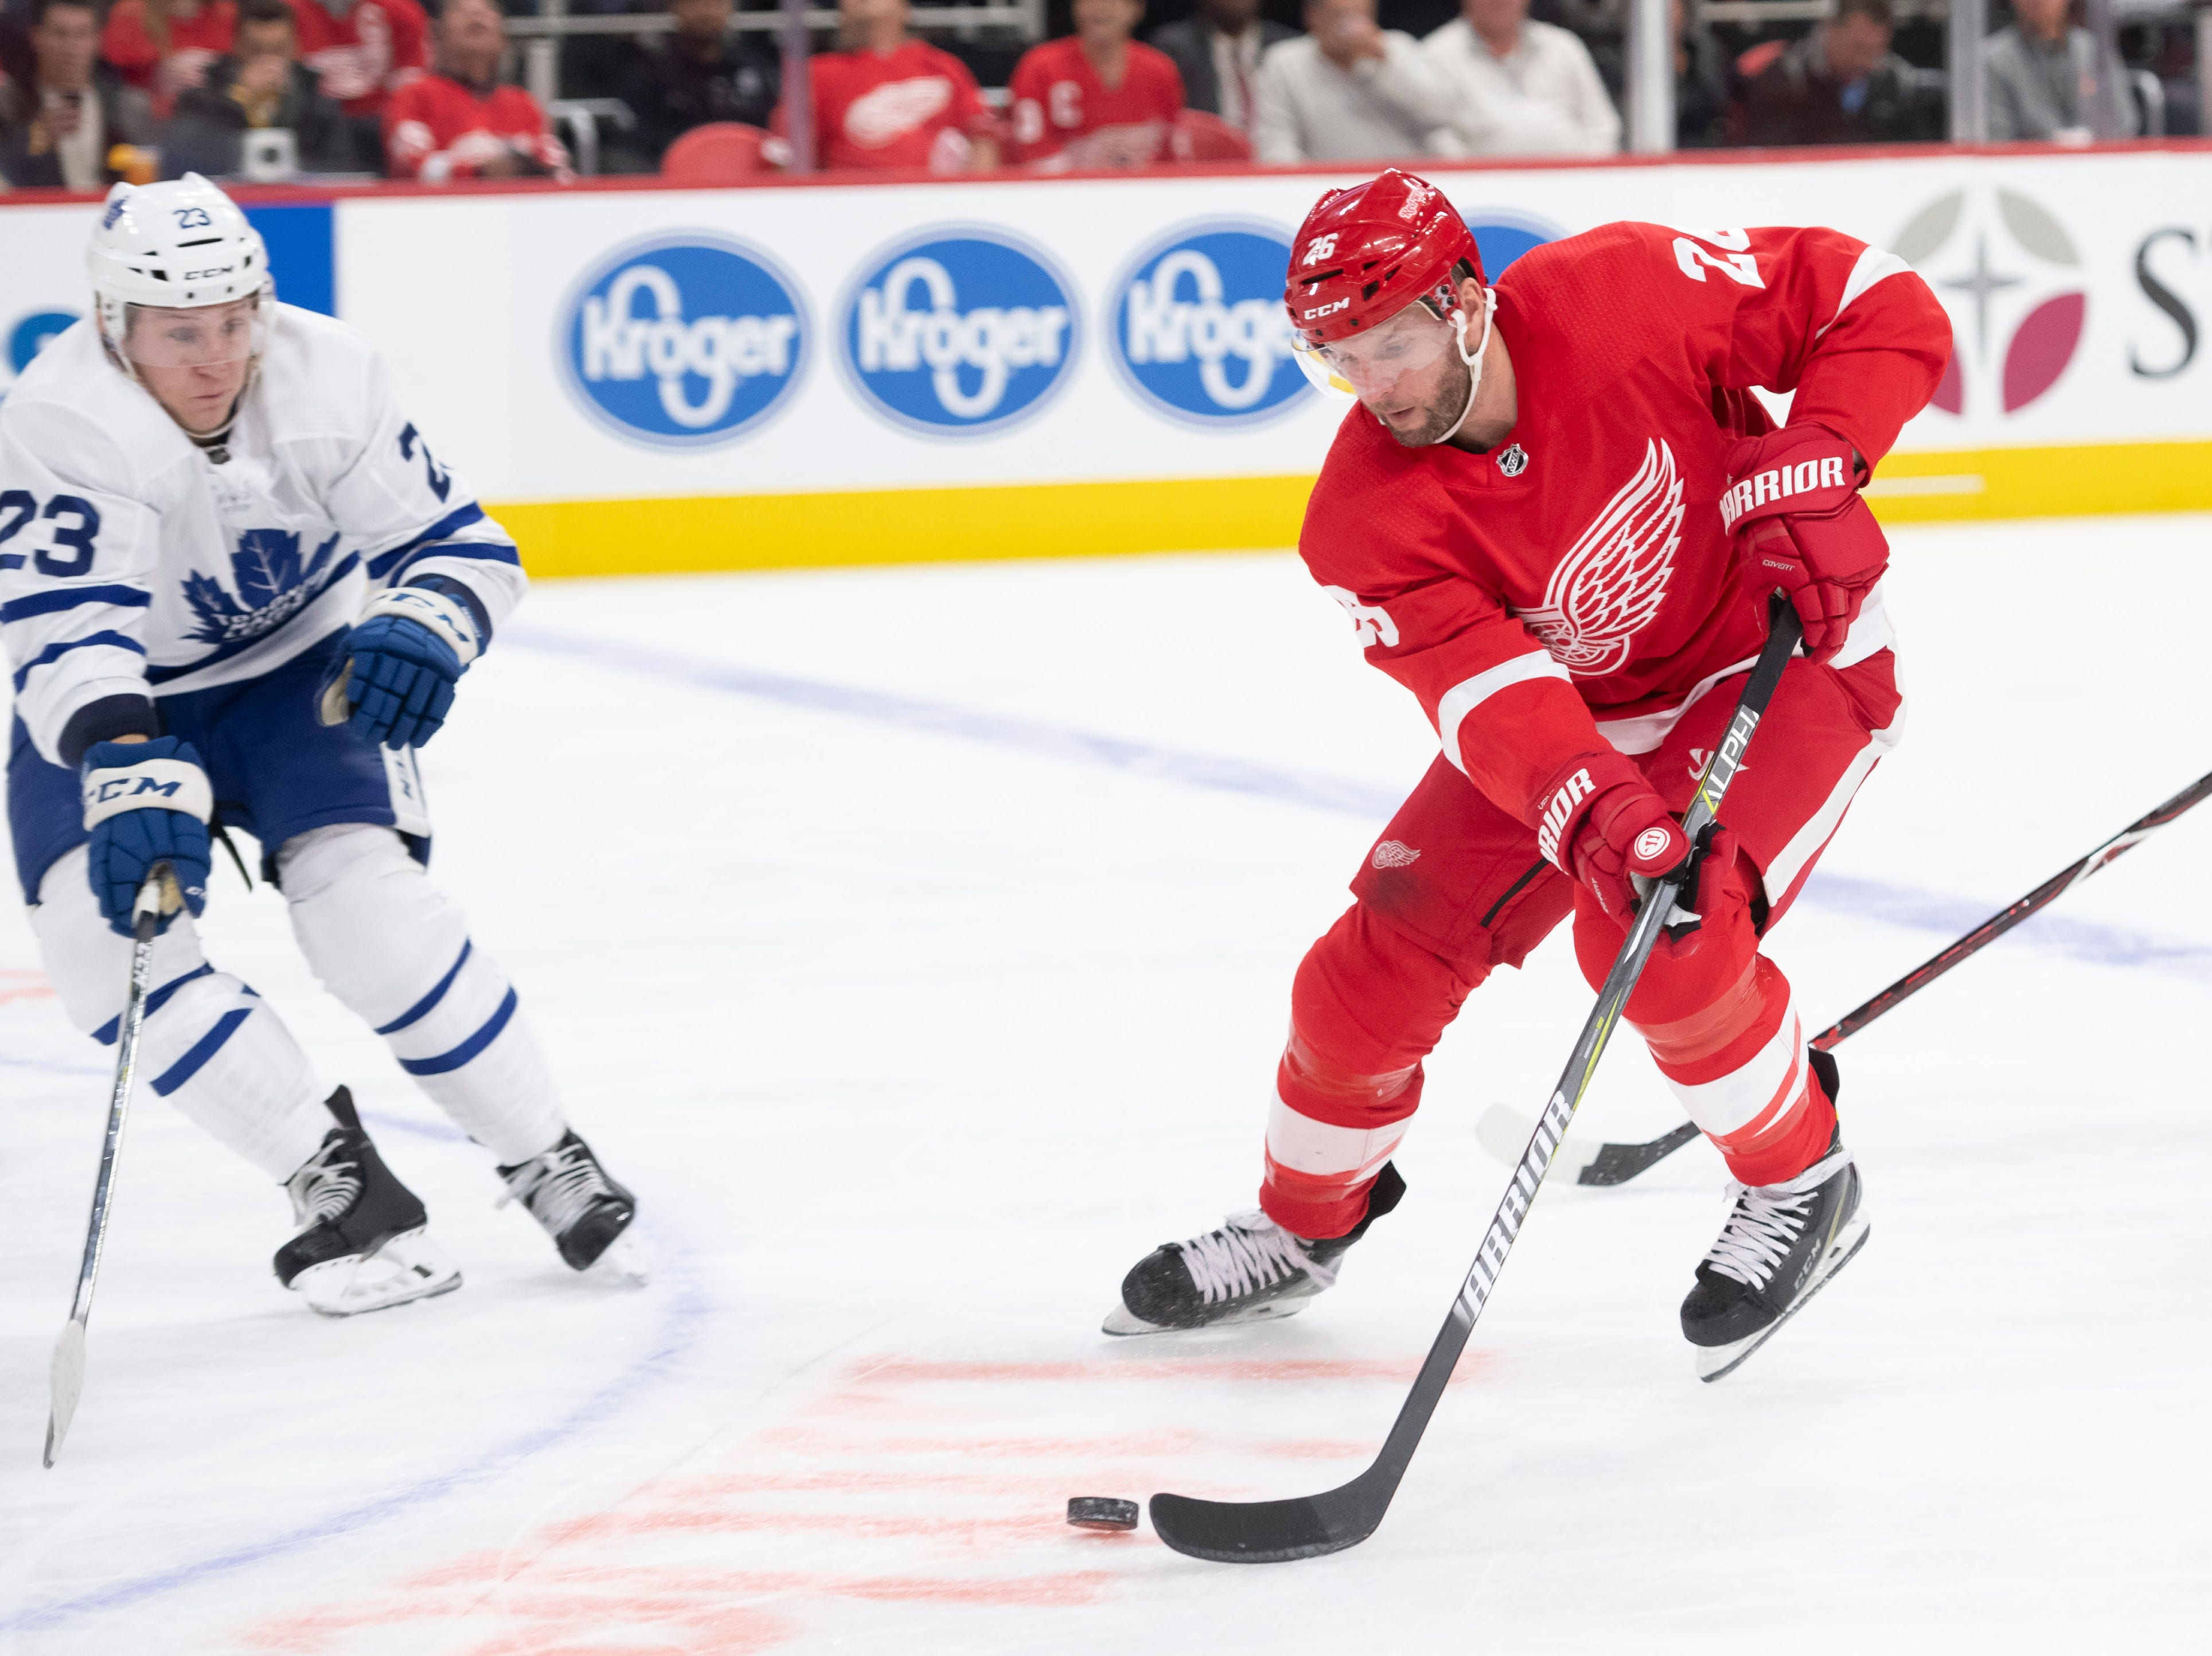 Detroit left wing Thomas Vanek tries to move the puck [ast Toronto defenseman Travis Dermott the second period.                  Photos are of the Detroit Red Wings vs. the Toronto Maple Leafs, at Little Caesars Arena, in Detroit, October 11, 2018.  (David Guralnick / The Detroit News)